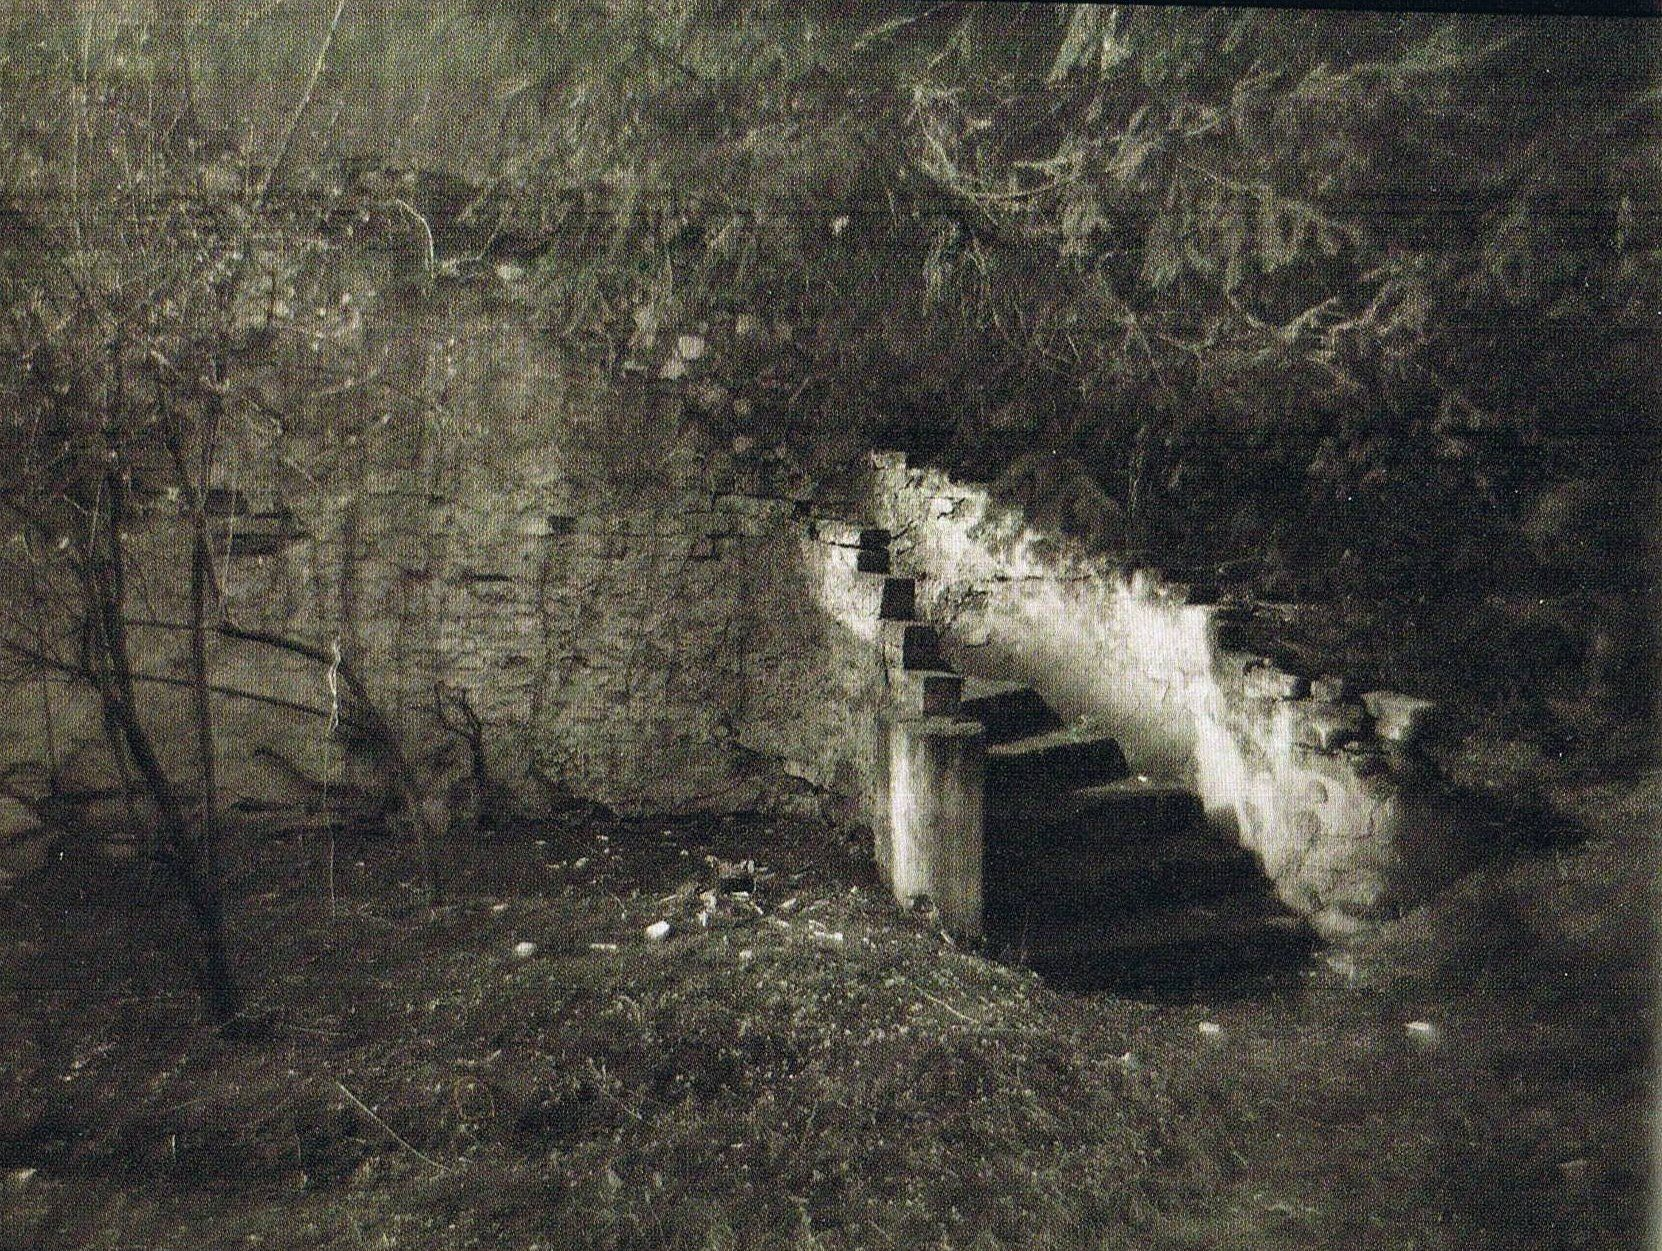 There was, even in Summertime, an unexplainable coldness near these steps. Since my childhood, I always avoided them.